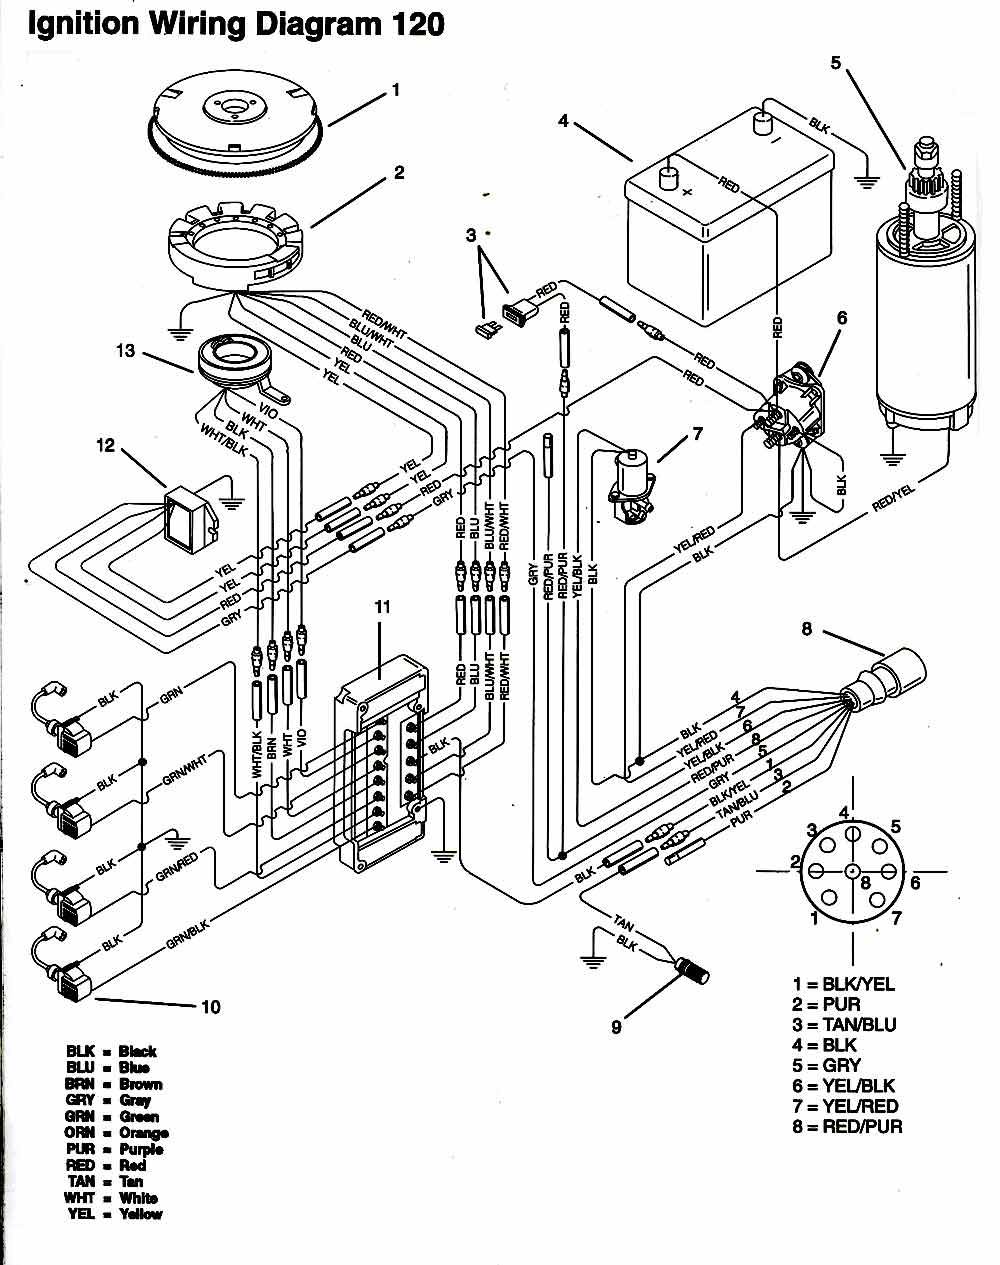 125 hp force outboard wiring diagram 40 hp mercury outboard wiring diagram mastertech marine -- chrysler & force outboard wiring diagrams